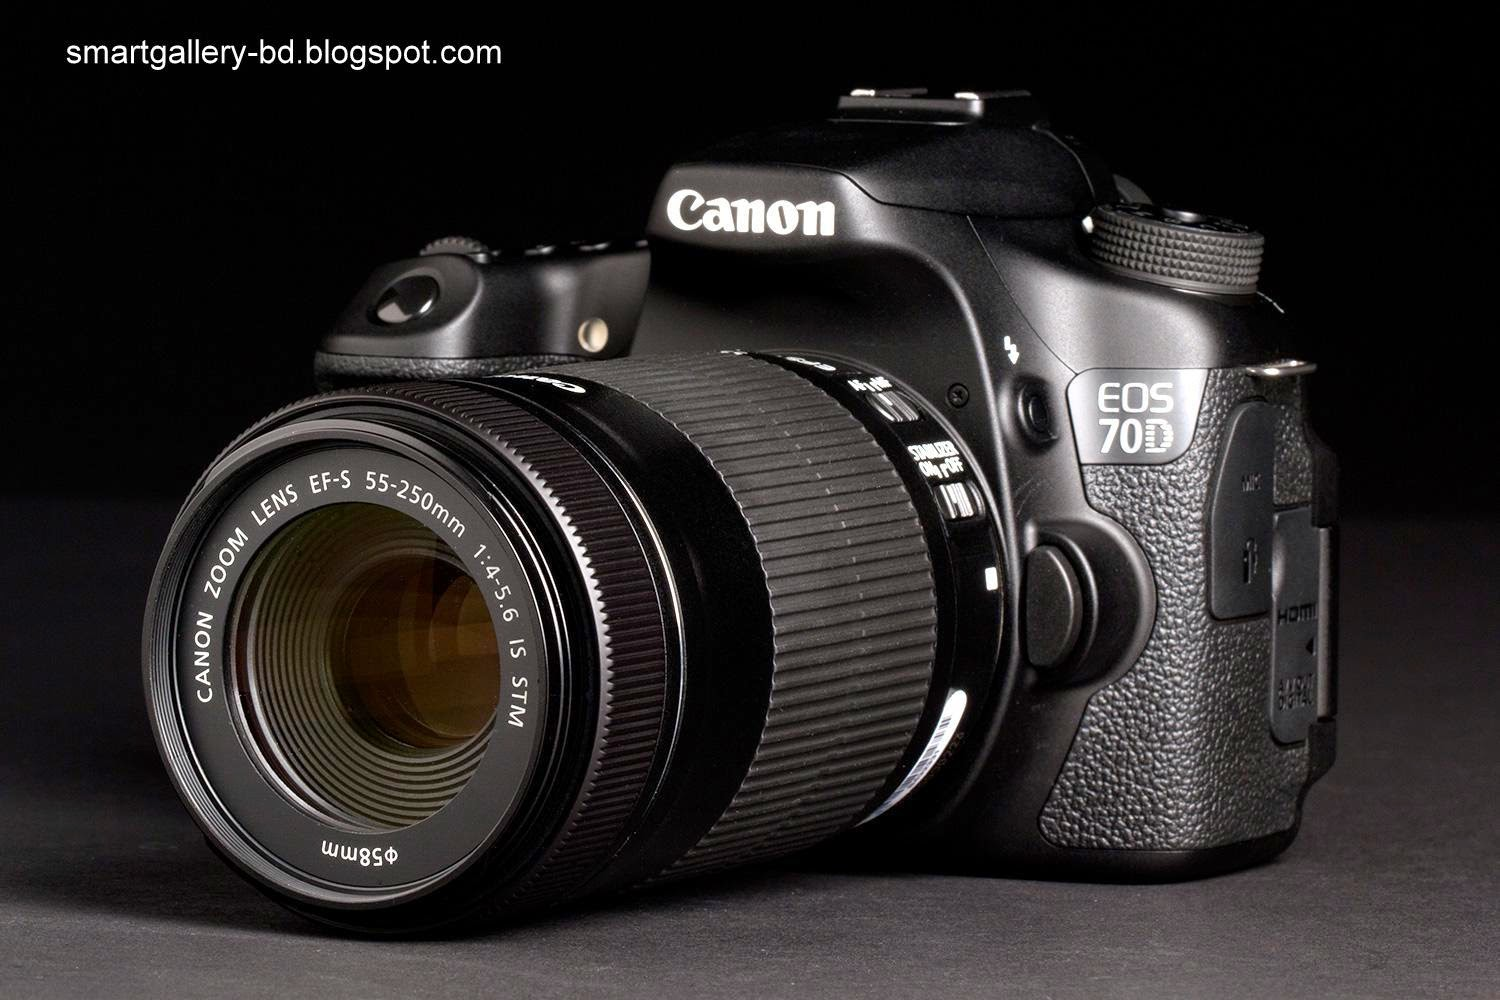 canon eos 70d price in the philippines